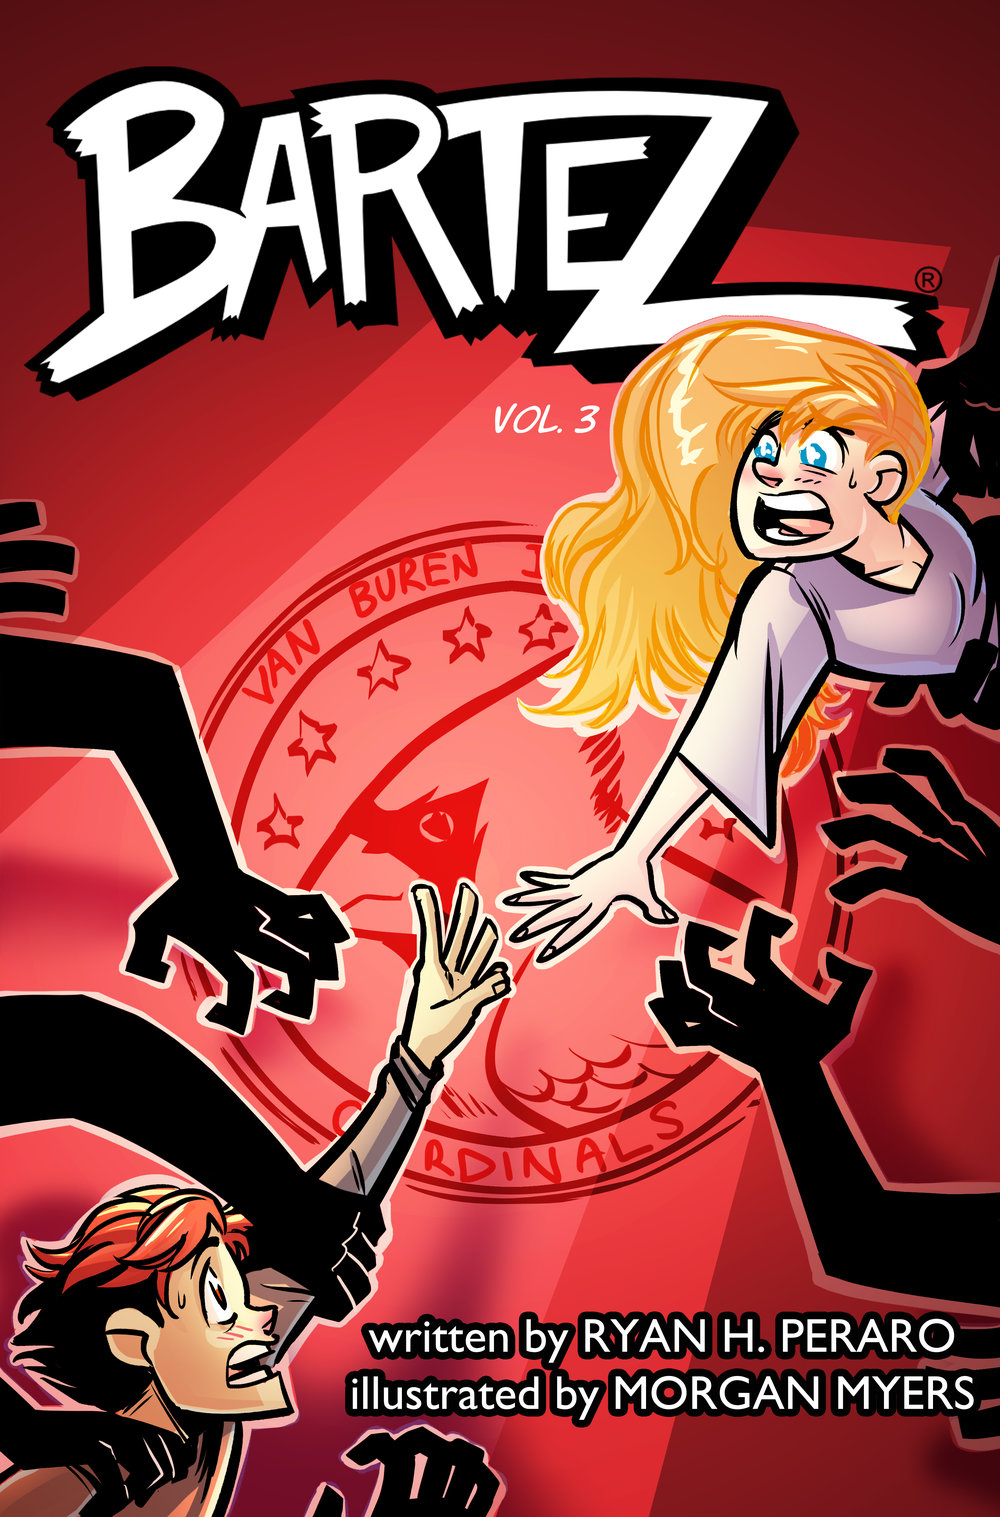 Bartez-Vol3-Cover_FRONT.jpg